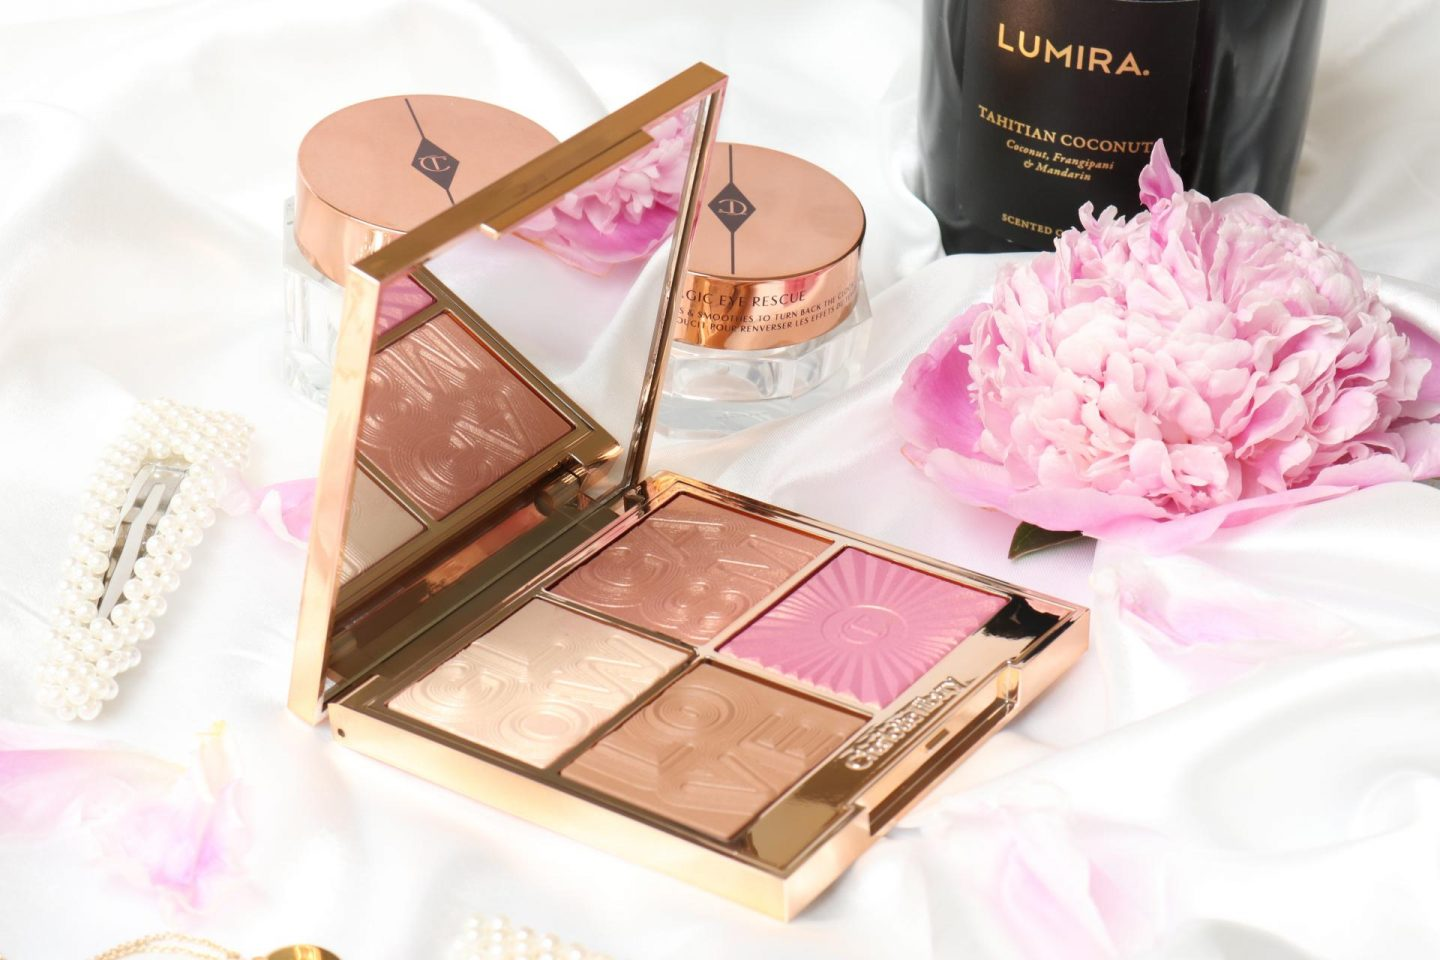 Get that glow with Charlotte Tilbury Glowgasm Face Palette